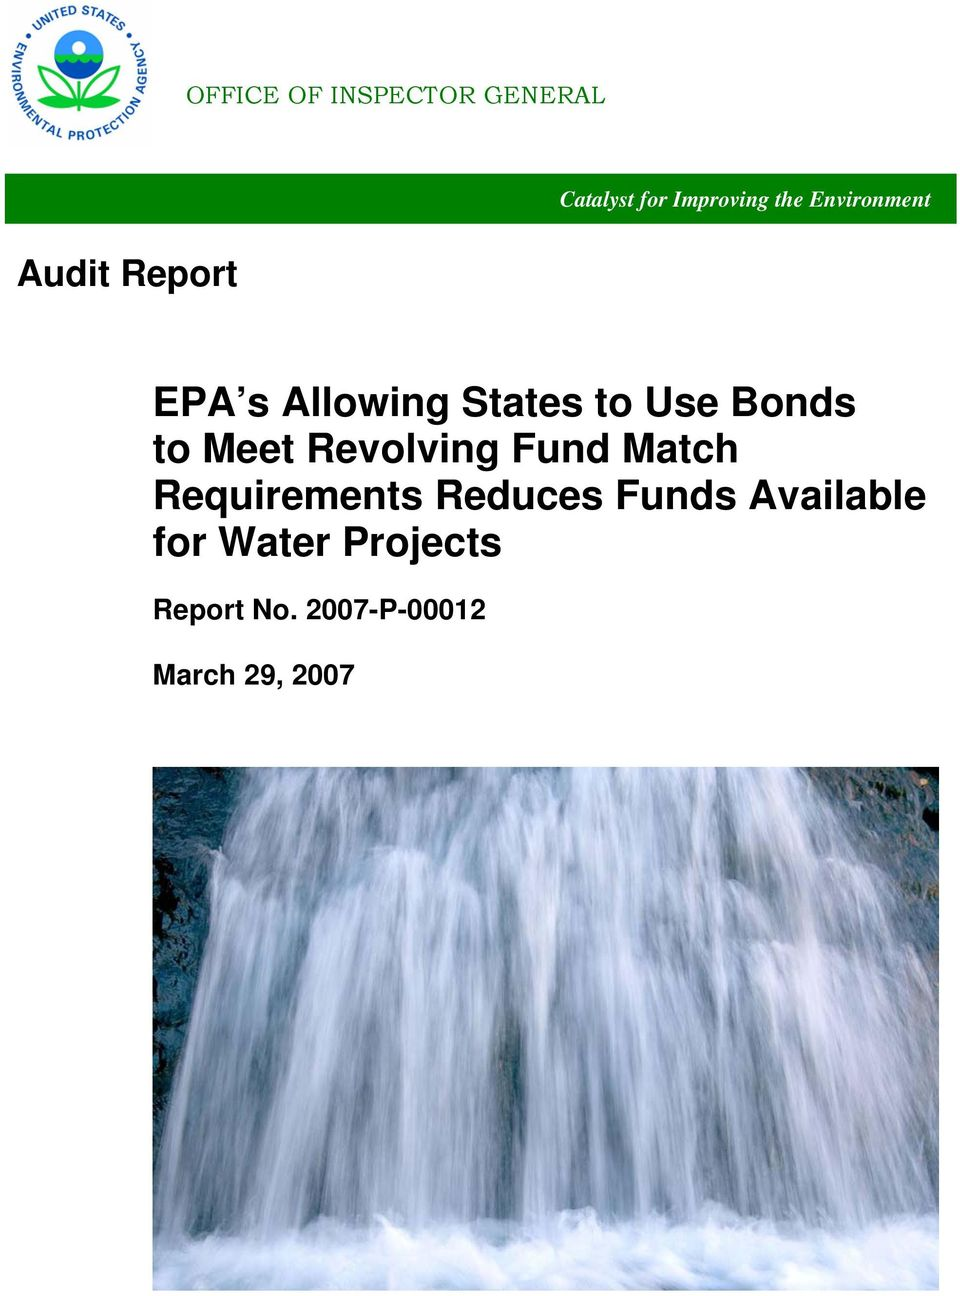 Bonds to Meet Revolving Fund Match Requirements Reduces